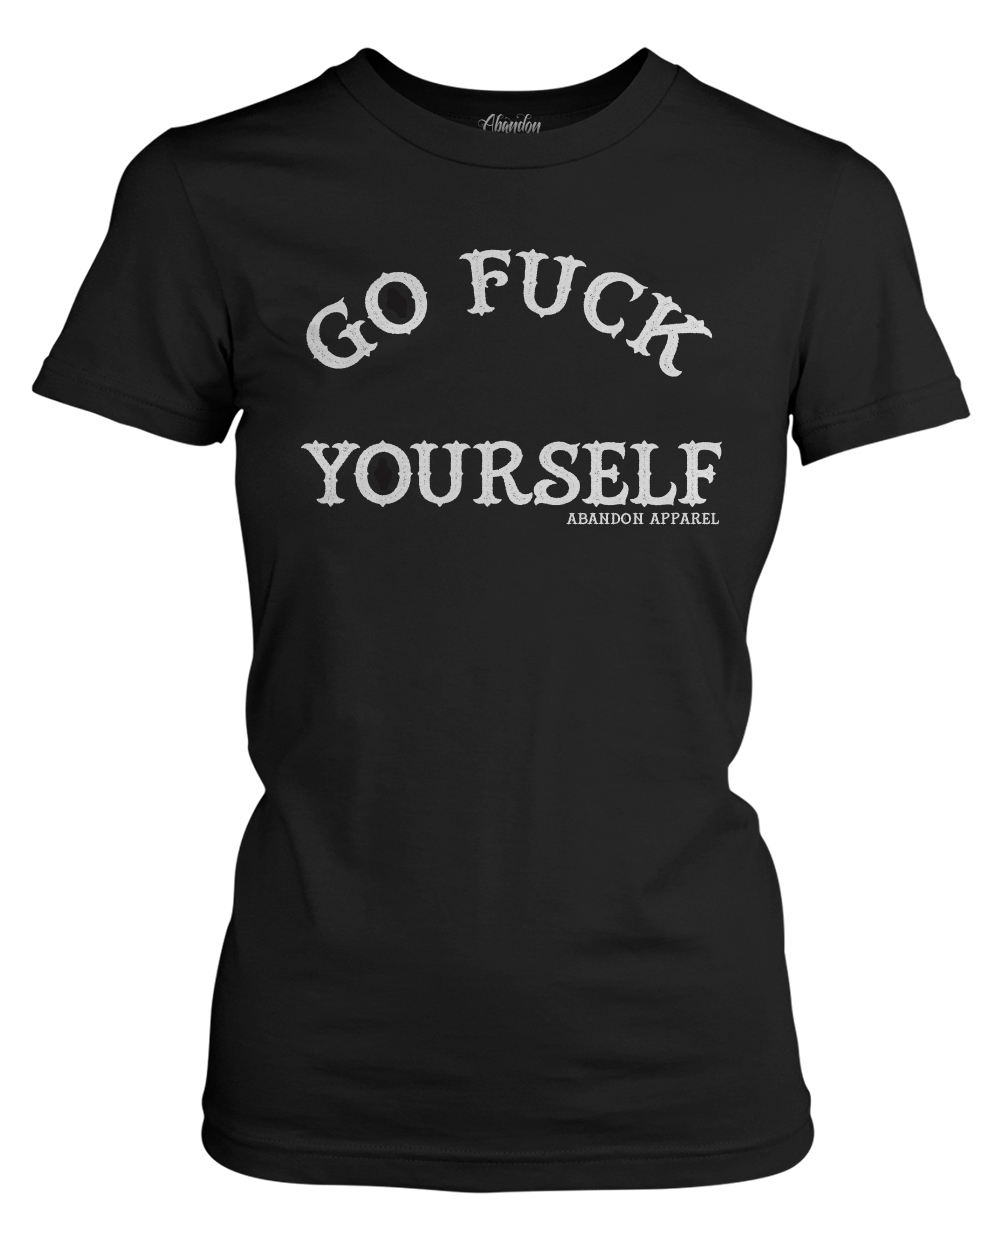 Go fuck yourself t shirt images 95